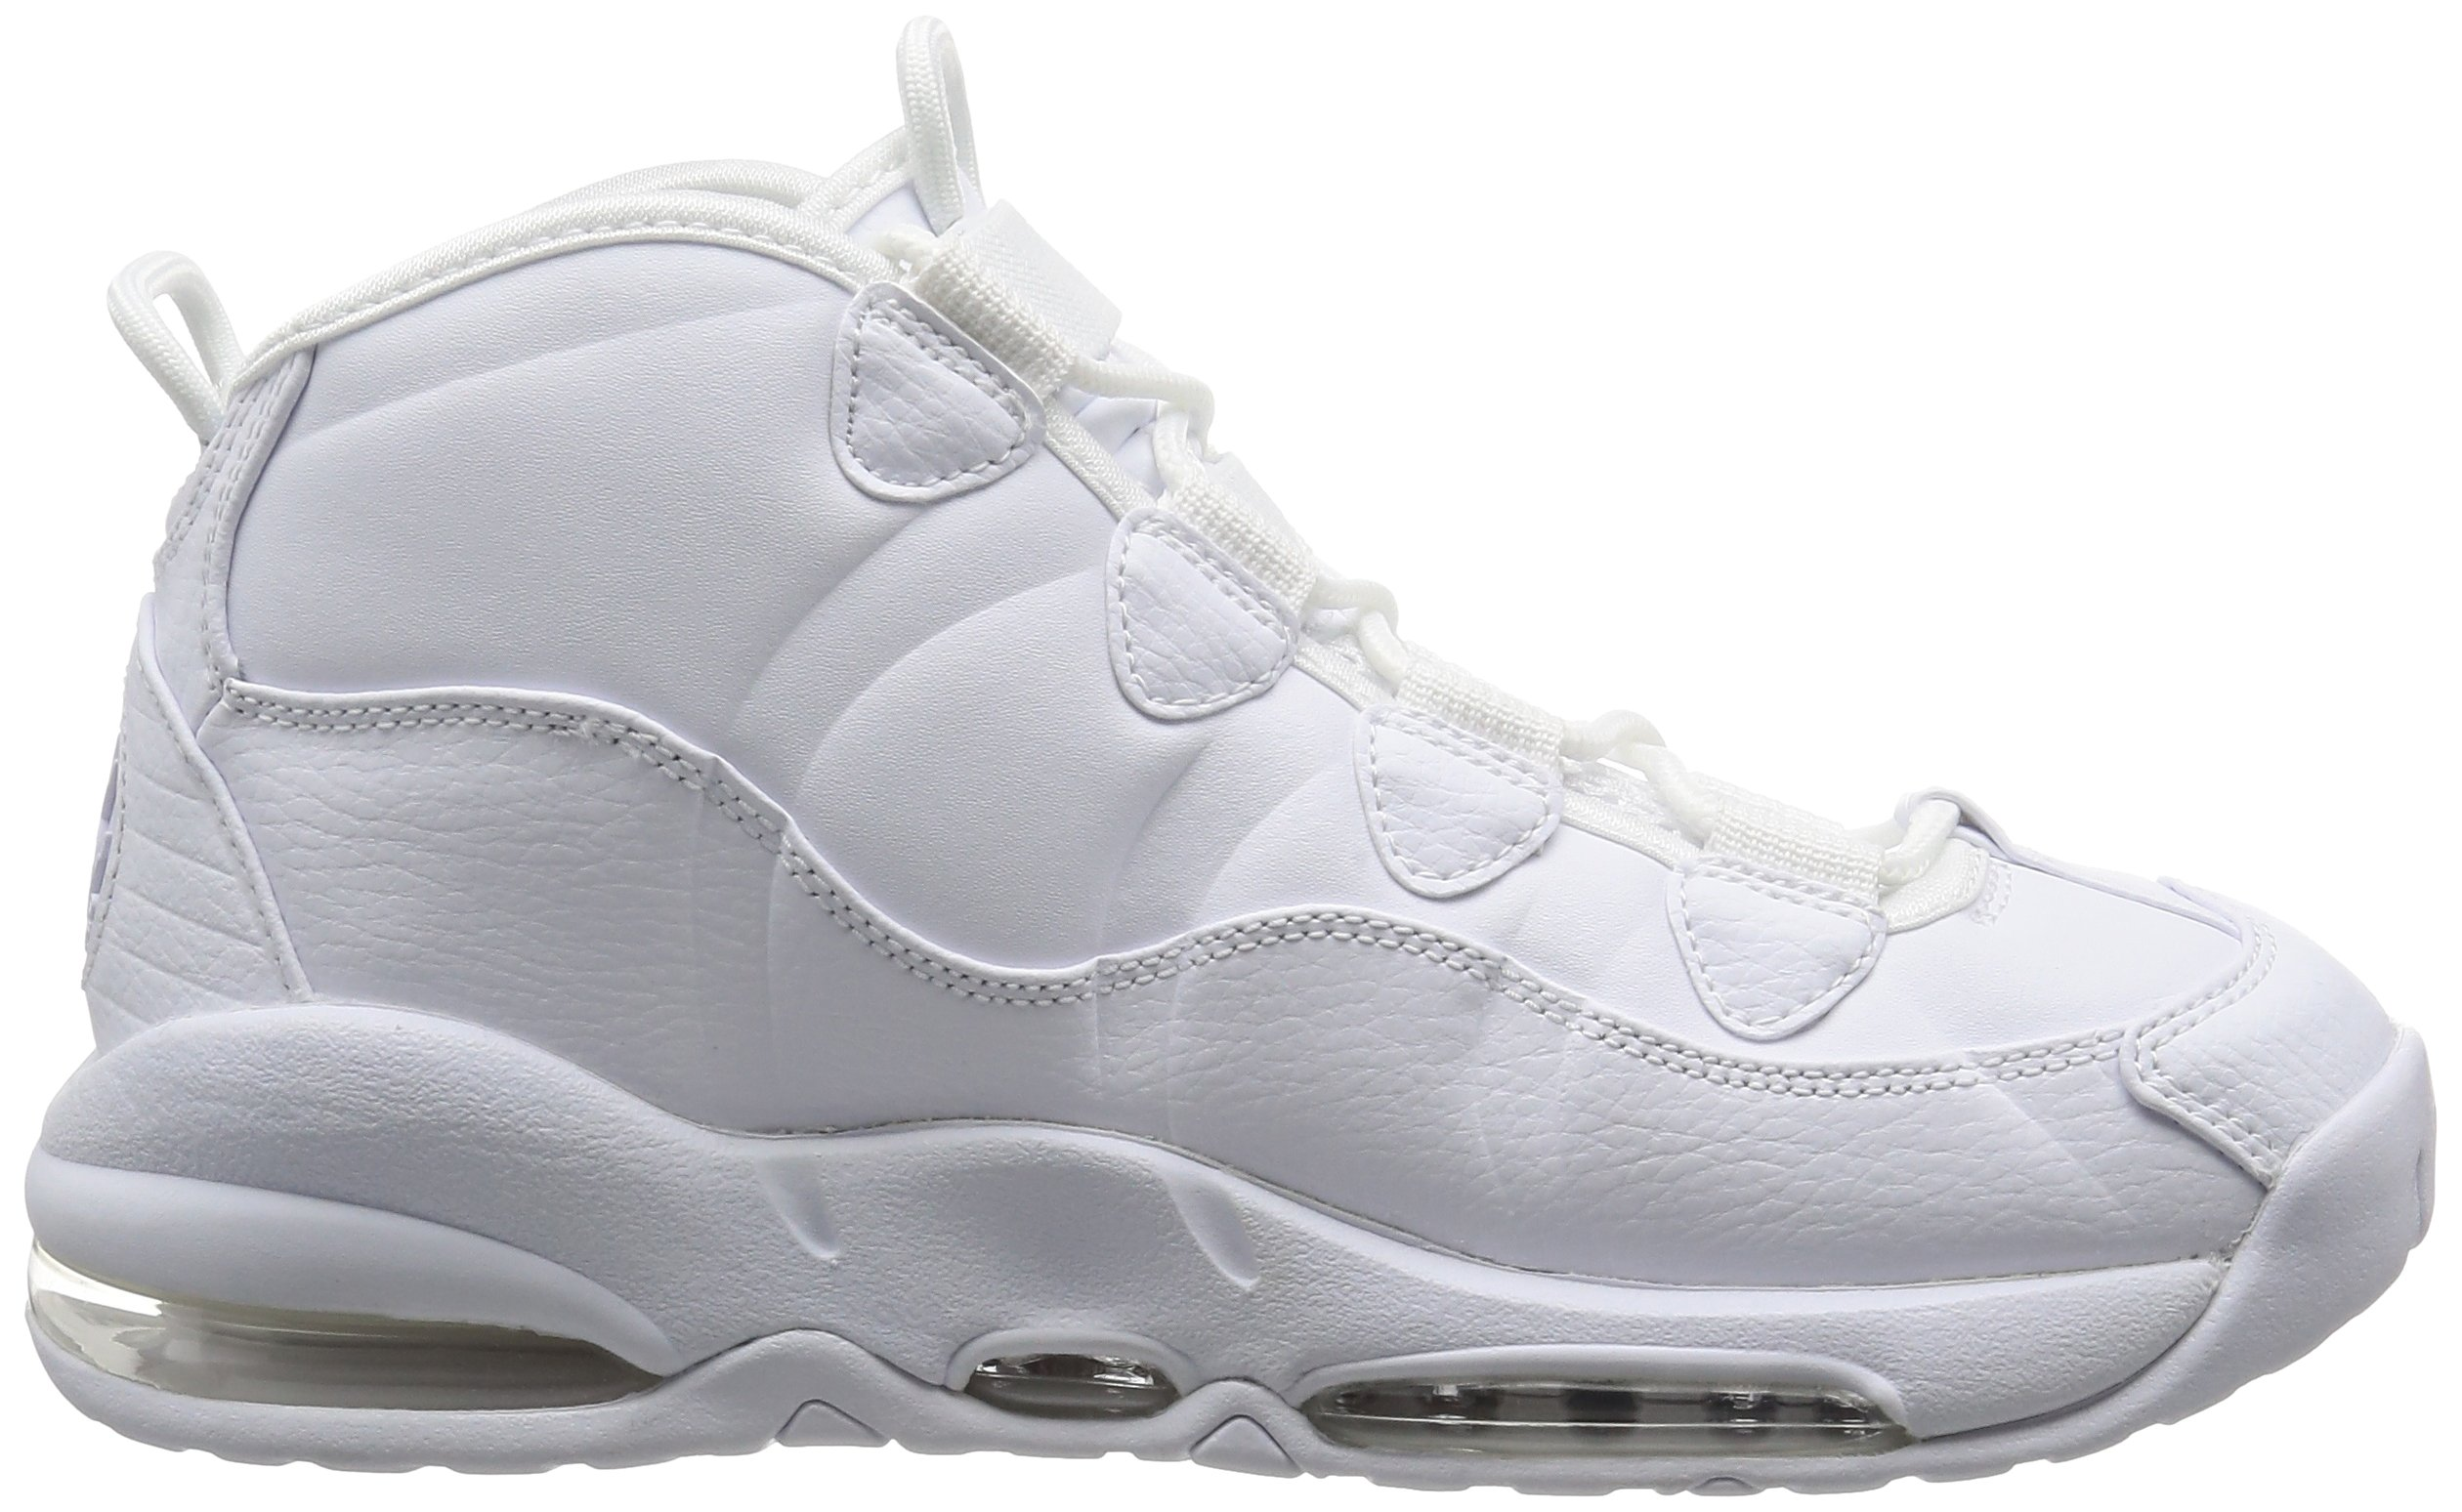 AIR MAX UPTEMPO 95 TRIPLE WHITE - 922935-100 - SIZE 10.5 - US Size